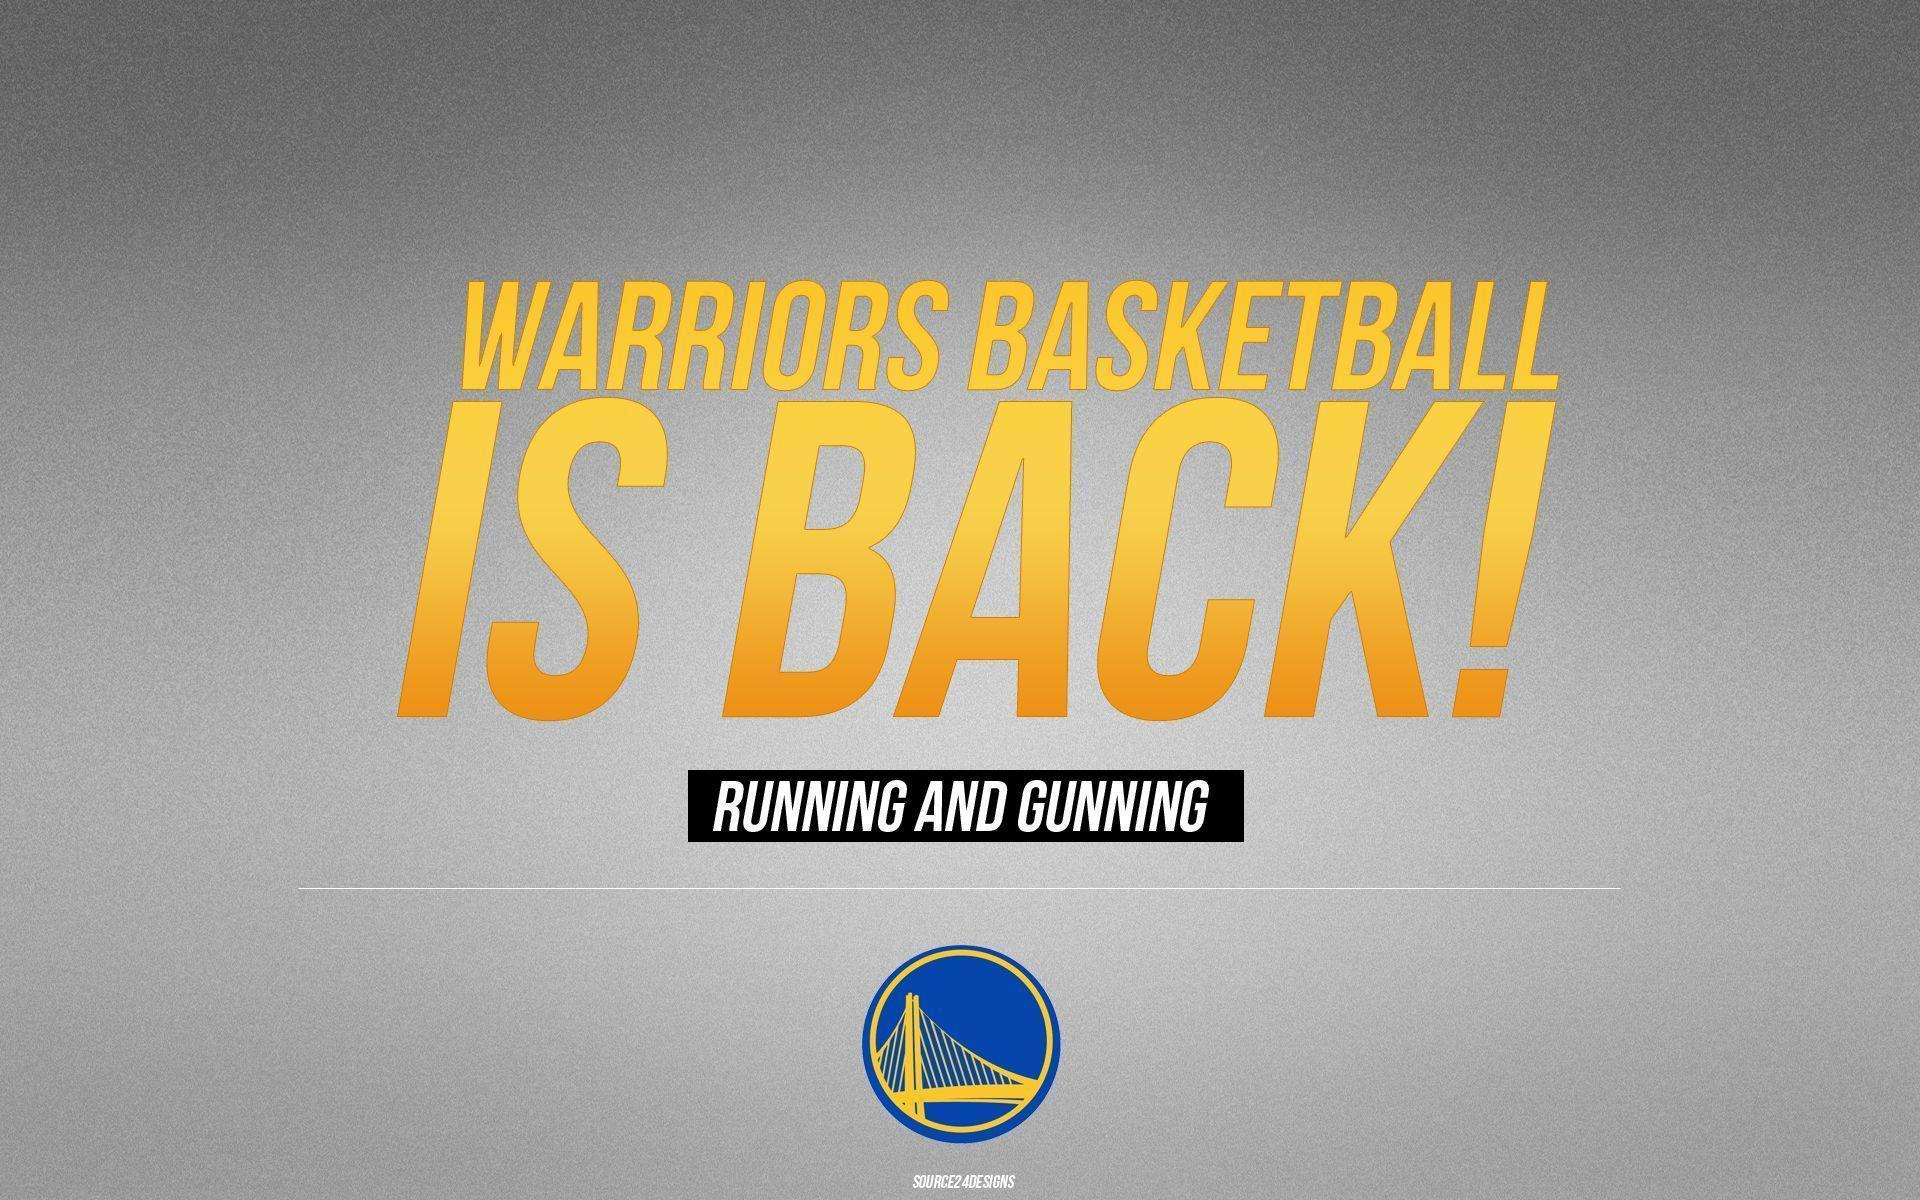 GOLDEN STATE WARRIORS Nba Basketball warriors basketball is back